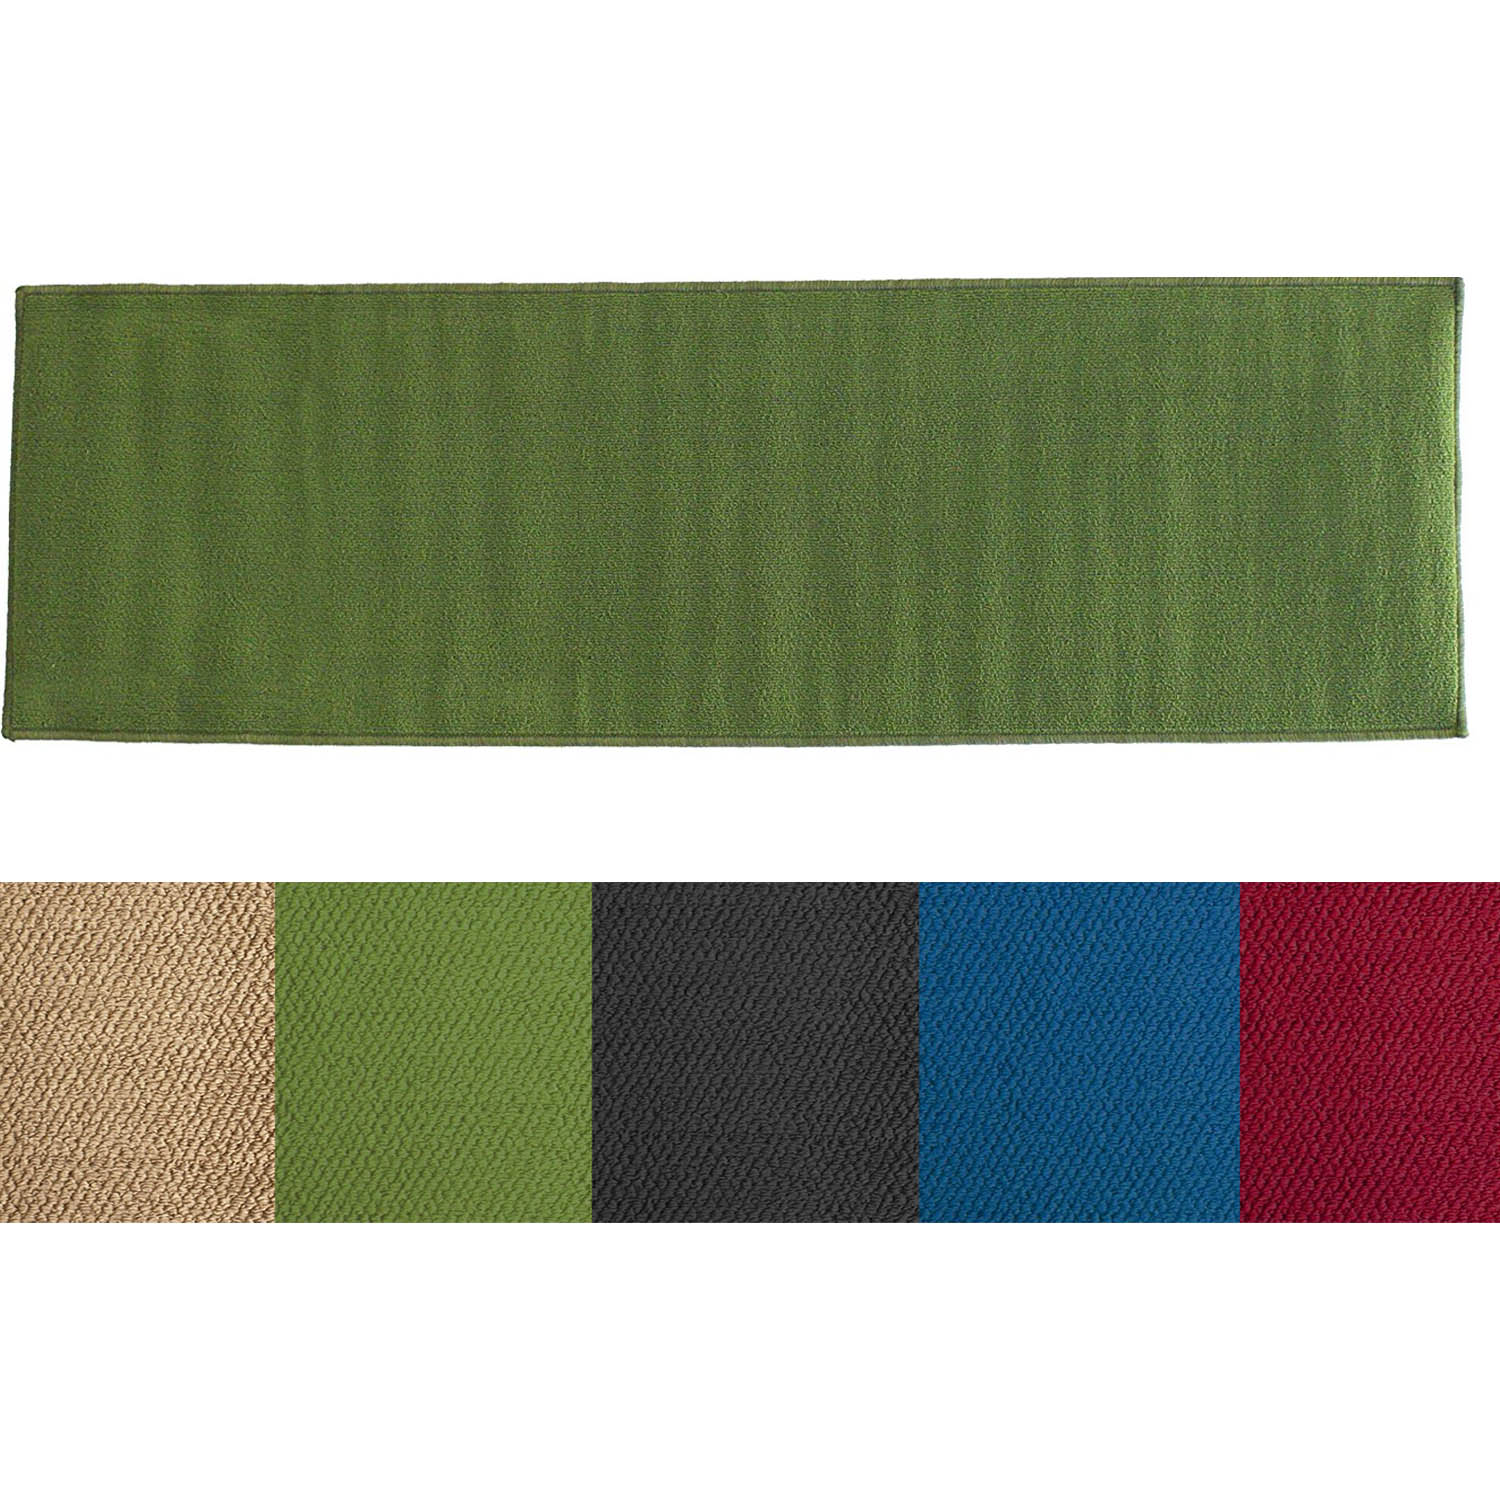 Ritz Accent Solid Color Runner Rug  Altmeyers BedBathHome